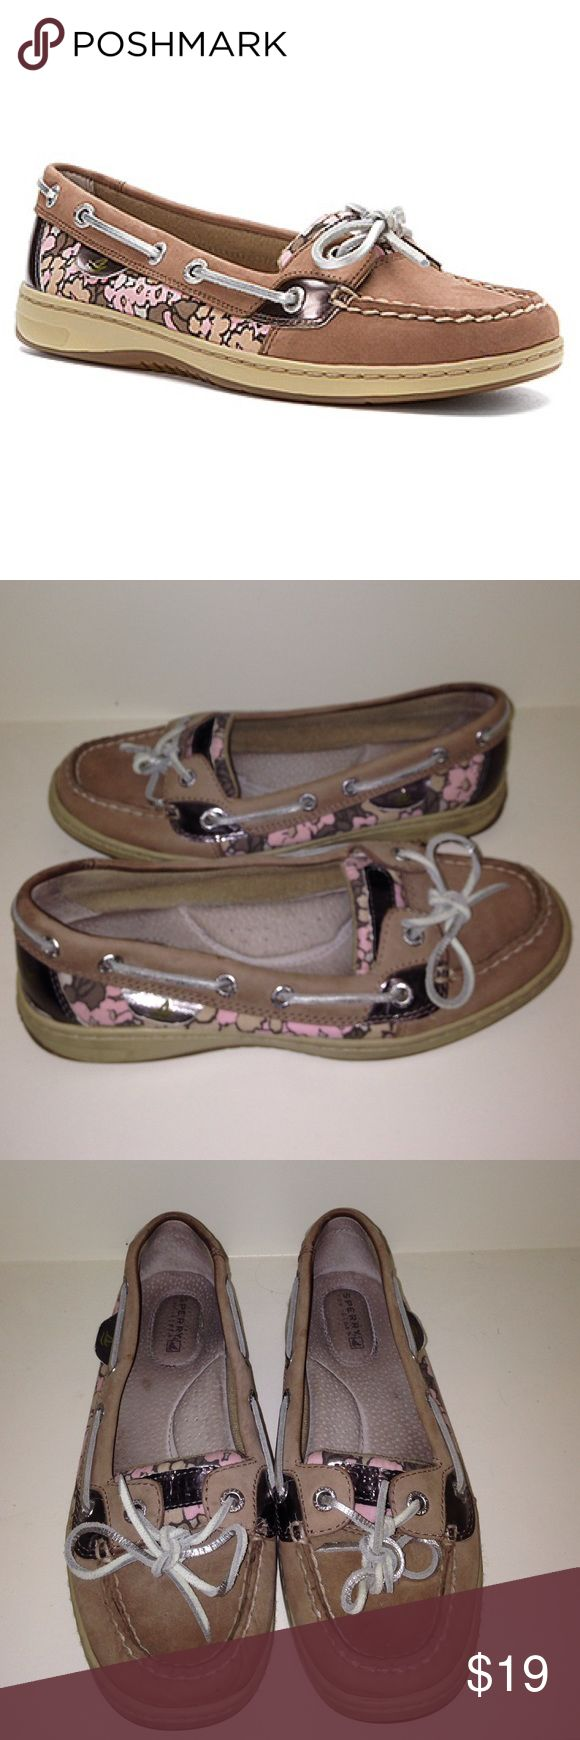 Sperry angelfish griege/pink floral Women's size 6.5 sperrys in good condition. Have silver accents and cute floral designs! Extremely comfy and classy. Open to offers! Sperry Top-Sider Shoes Flats & Loafers